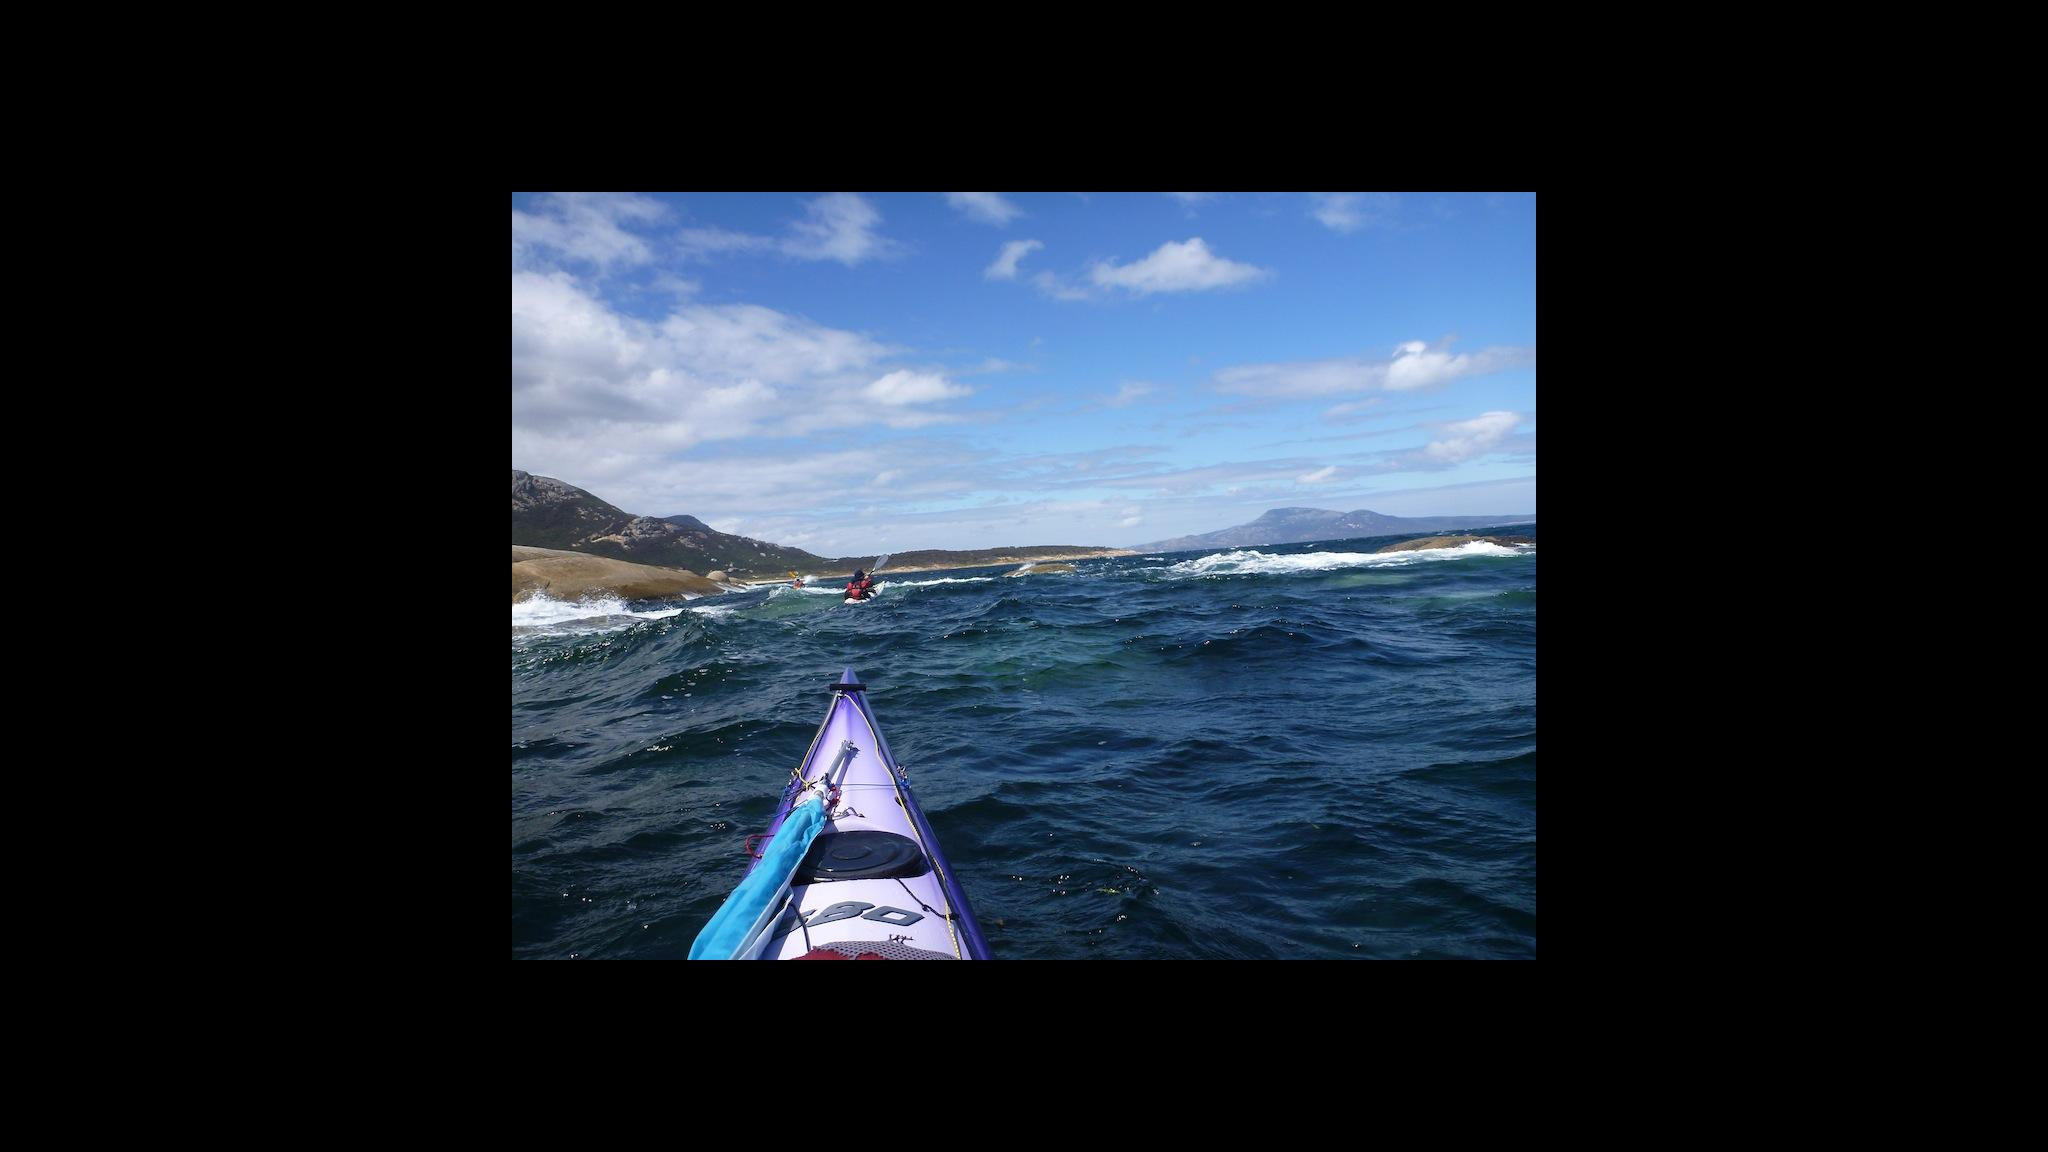 Roaring 40s Kayaking - Learn to sea kayak in waves Hobart Tasmania